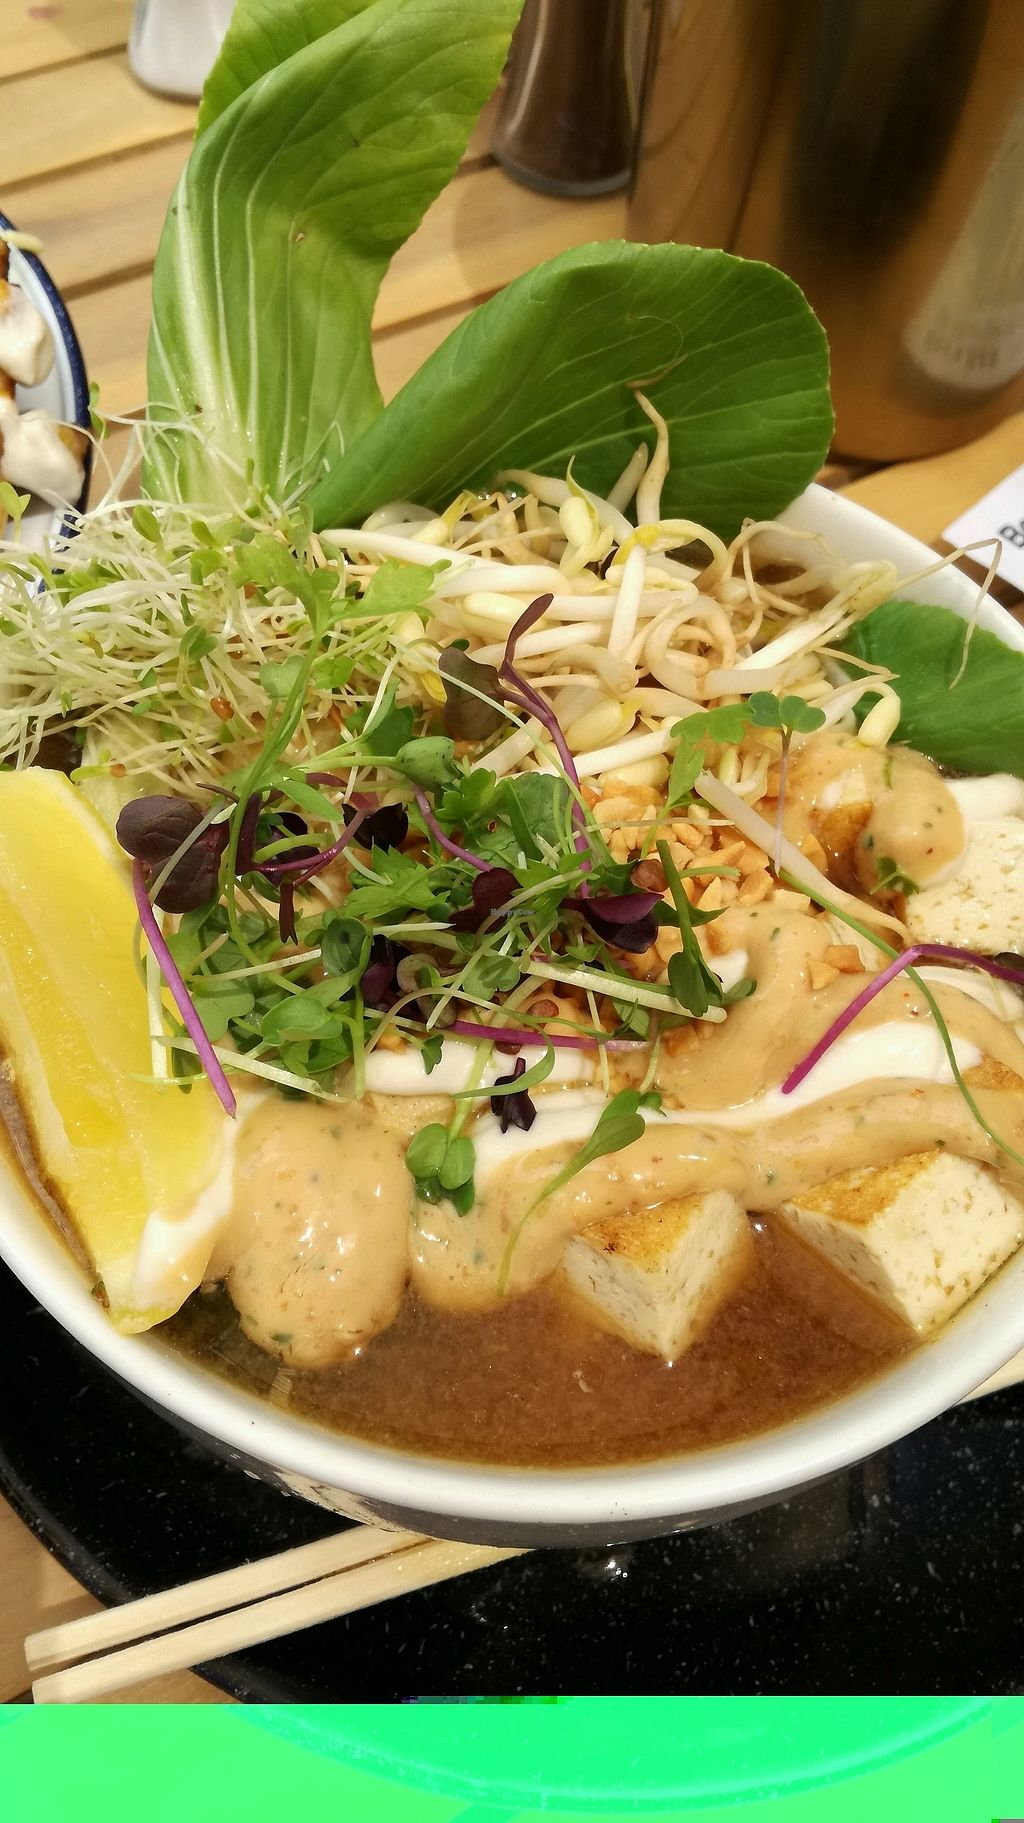 """Photo of Wild One Wholefoods Eatery   by <a href=""""/members/profile/evajelen"""">evajelen</a> <br/>miso noodle bowl with tofu was amazing <br/> January 19, 2018  - <a href='/contact/abuse/image/78133/348199'>Report</a>"""